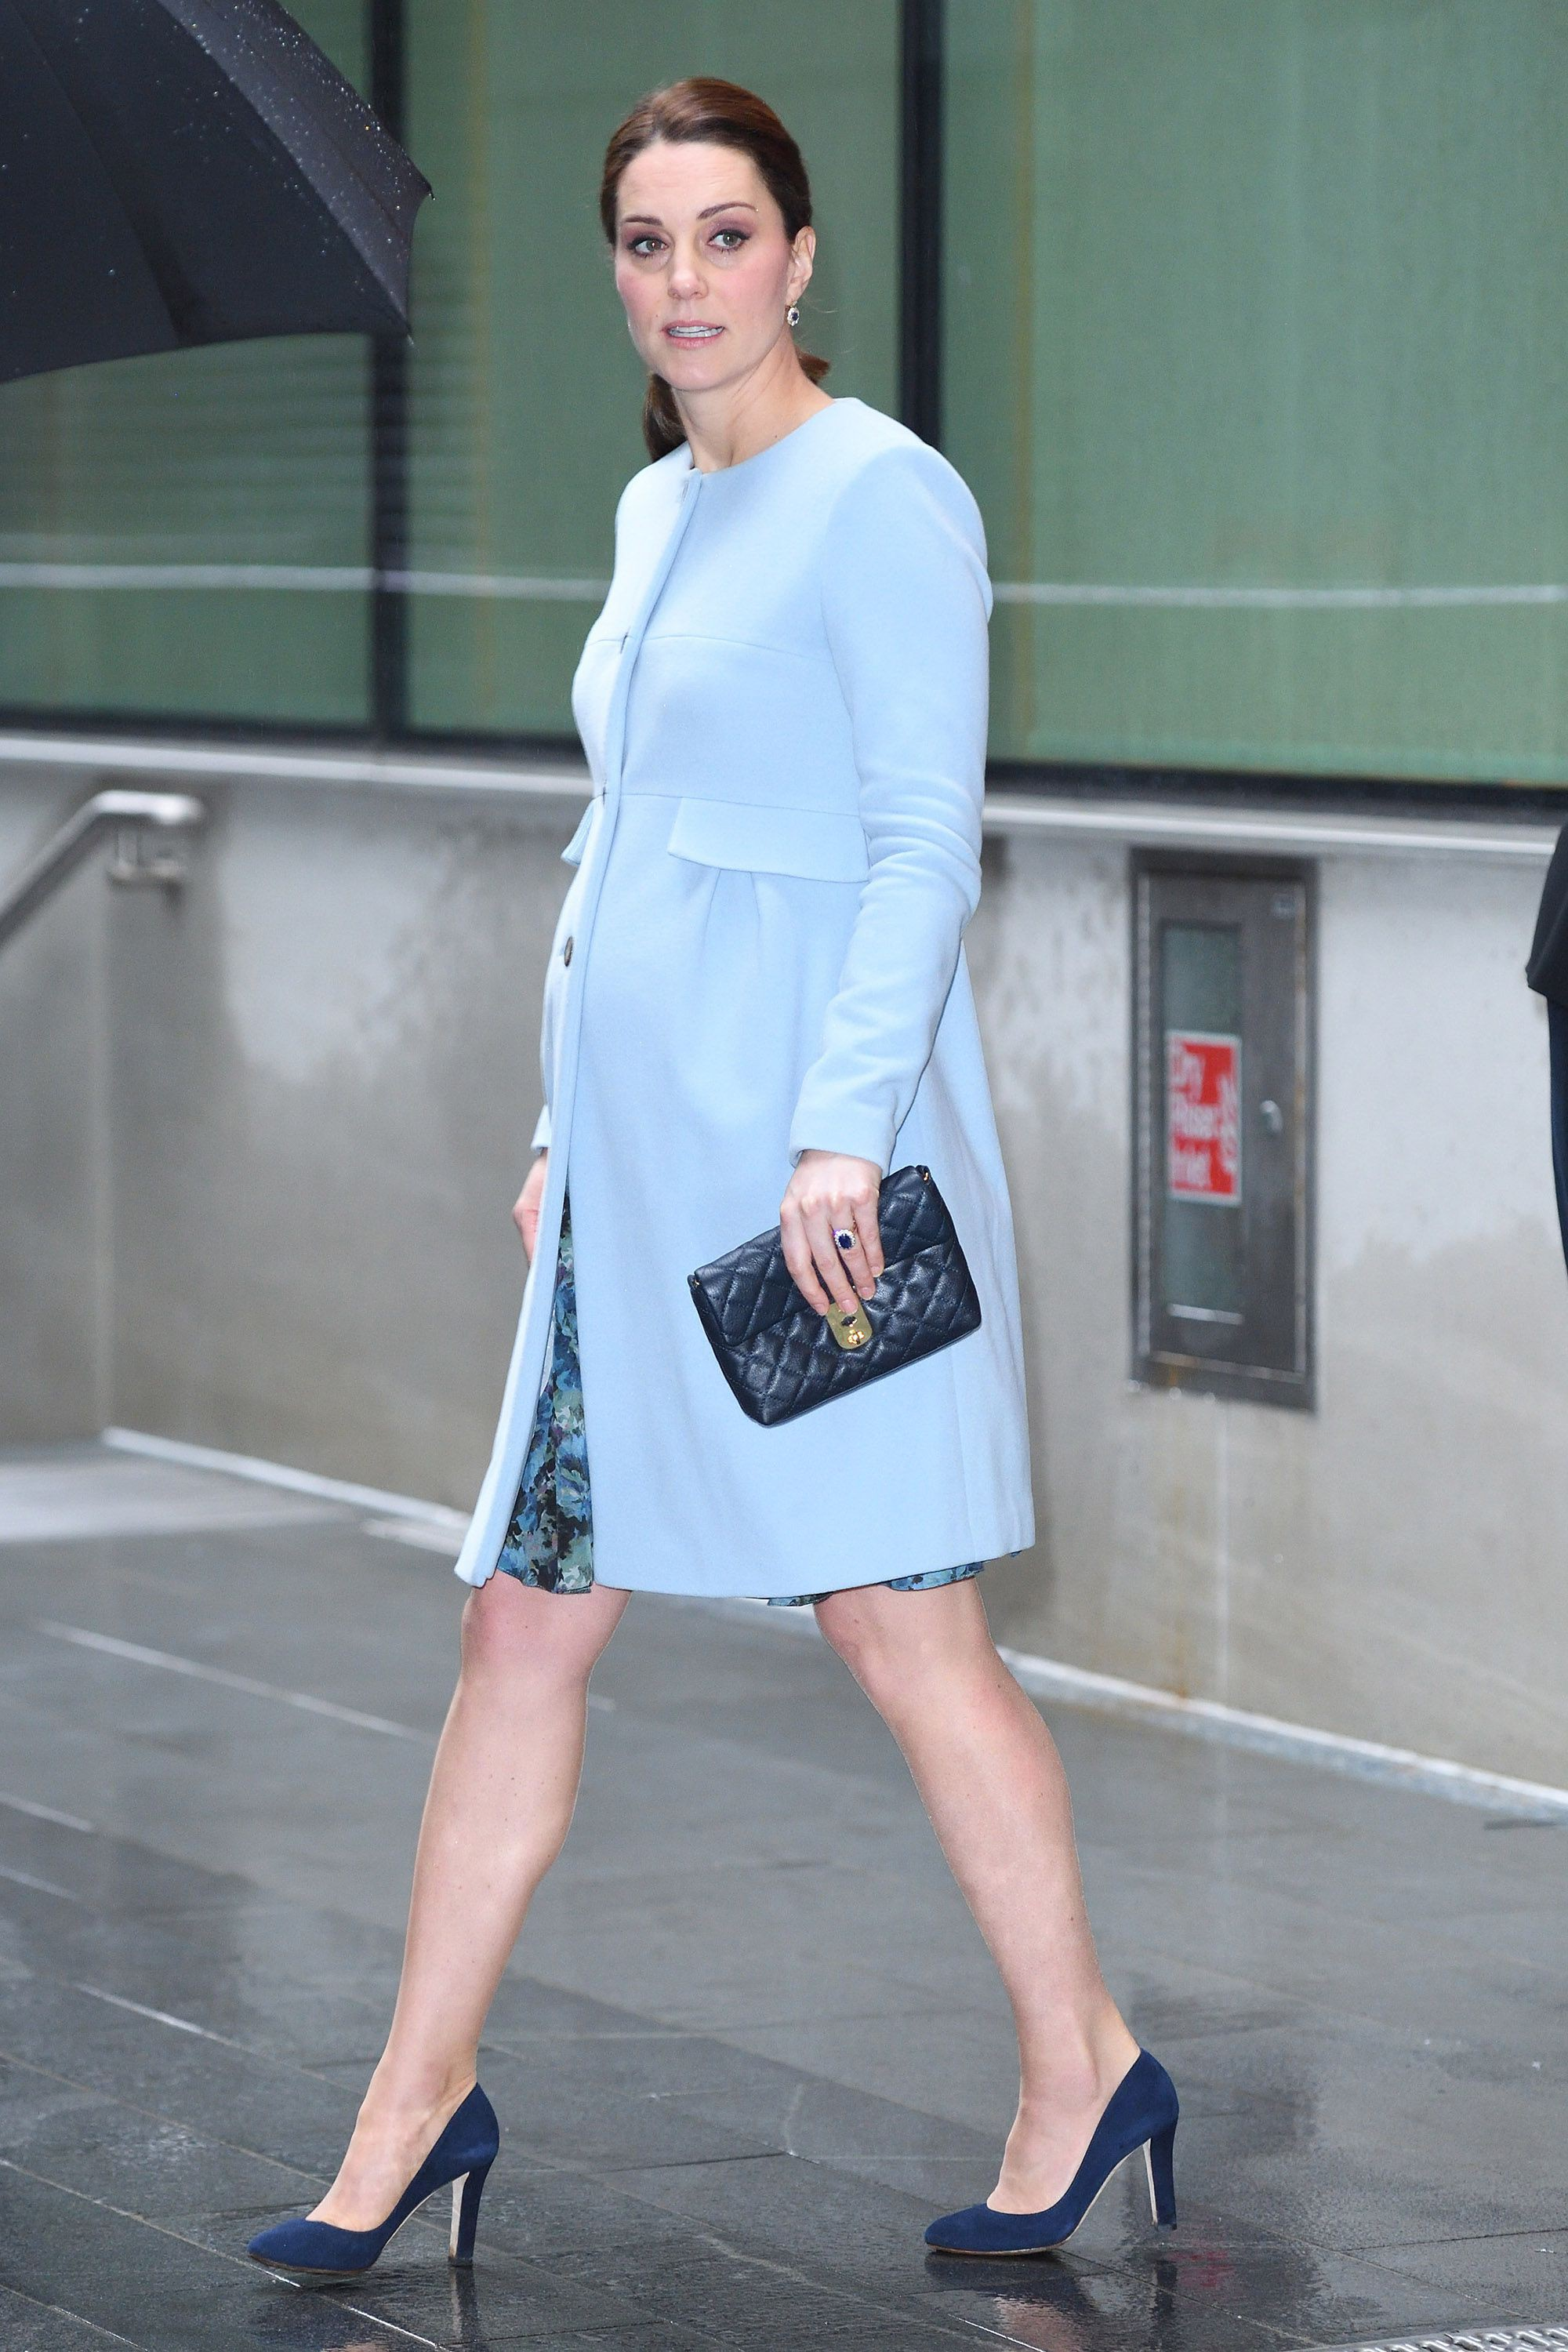 hbz-kate-middleton-maternity-style-012418-gettyimages-909740270-1522866692